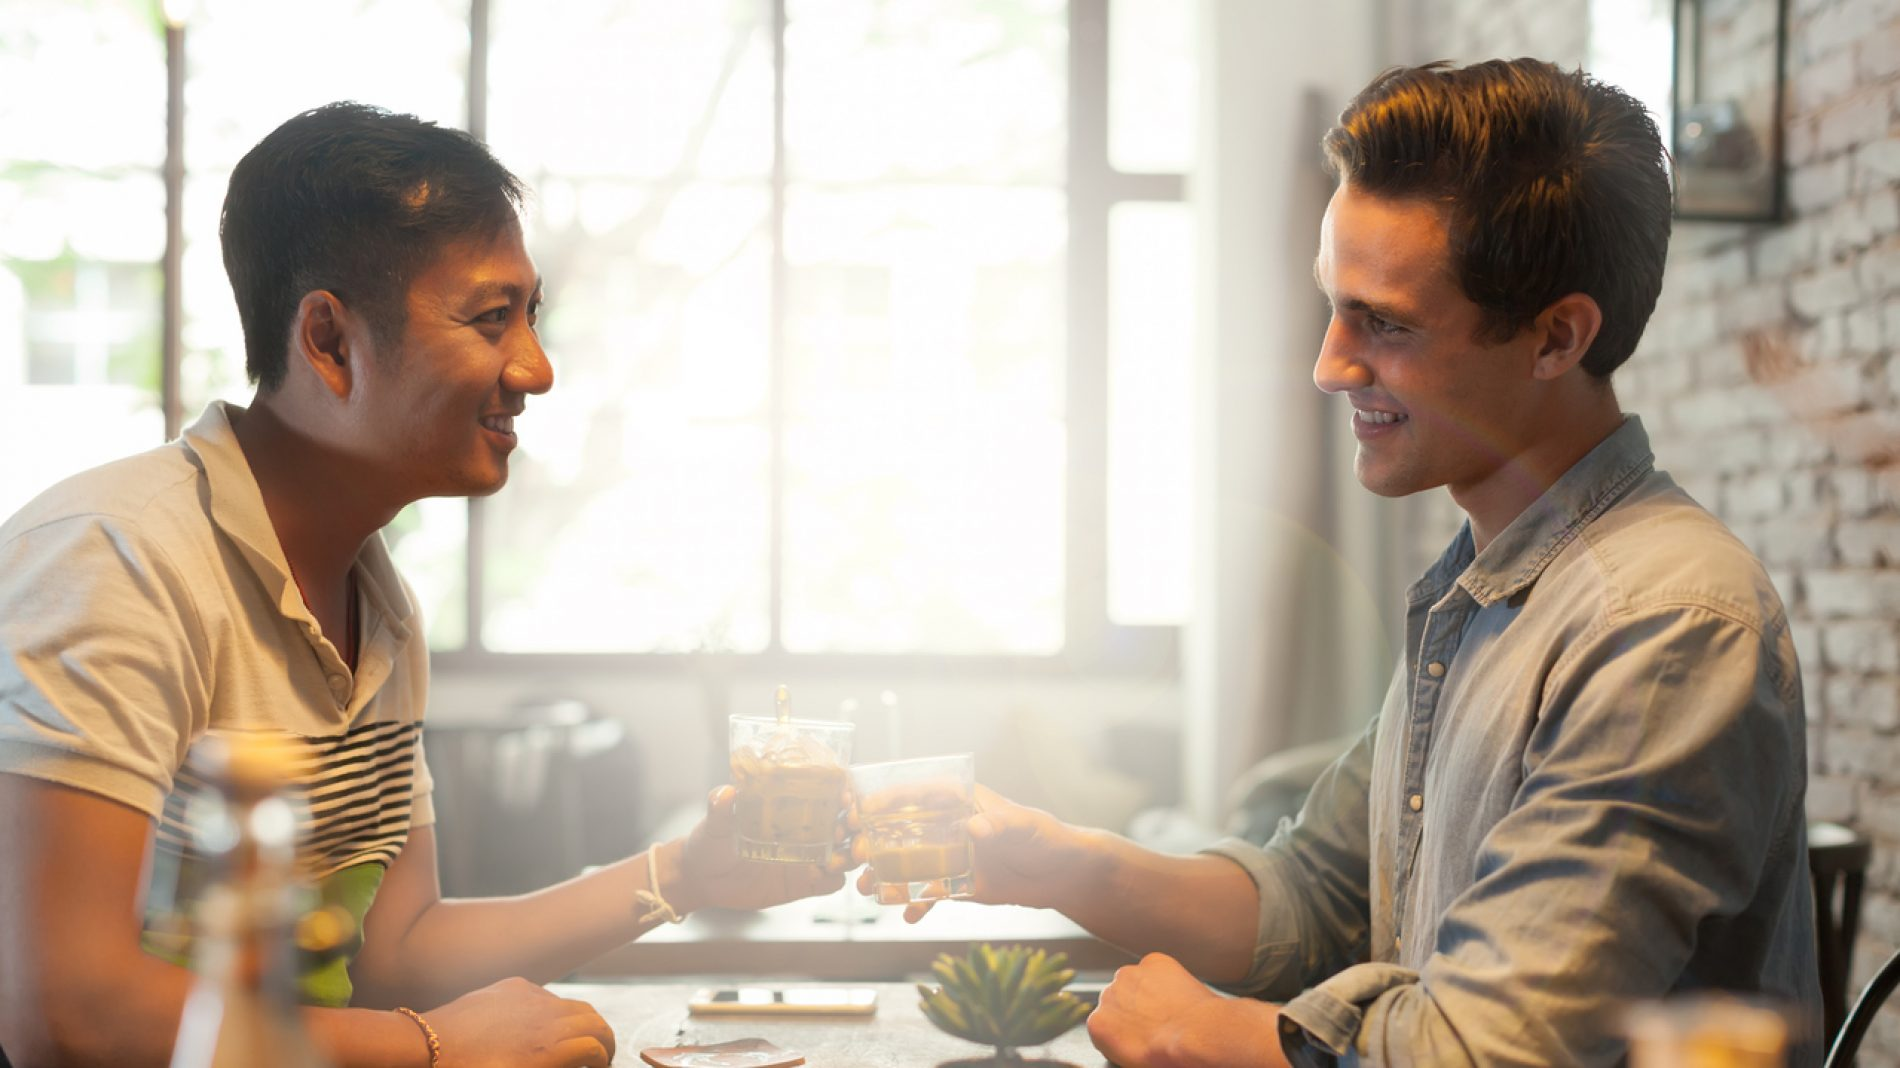 Two Men Cheers Toast Drink, Friends Guys Happy Smile